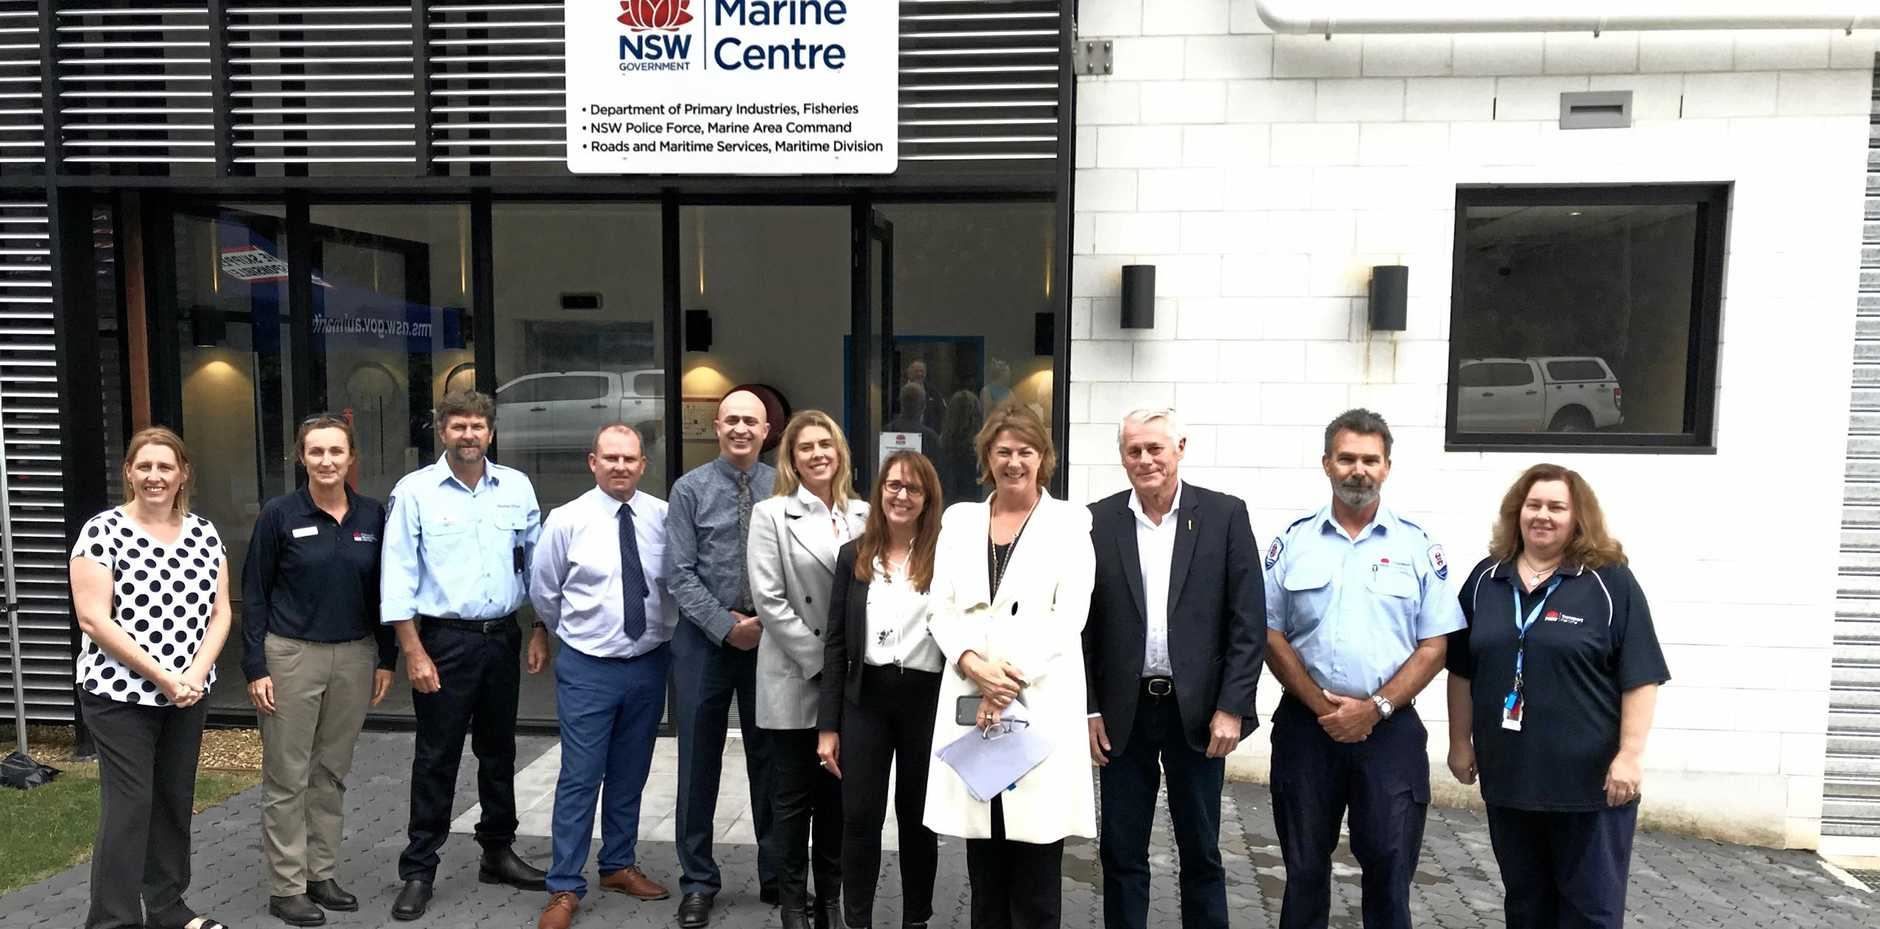 The multi purpose Tweed Heads Marine Centre was opened by Minister for Roads, Maritime and Freight Melinda Pavey and Tweed MP Geoff Provest